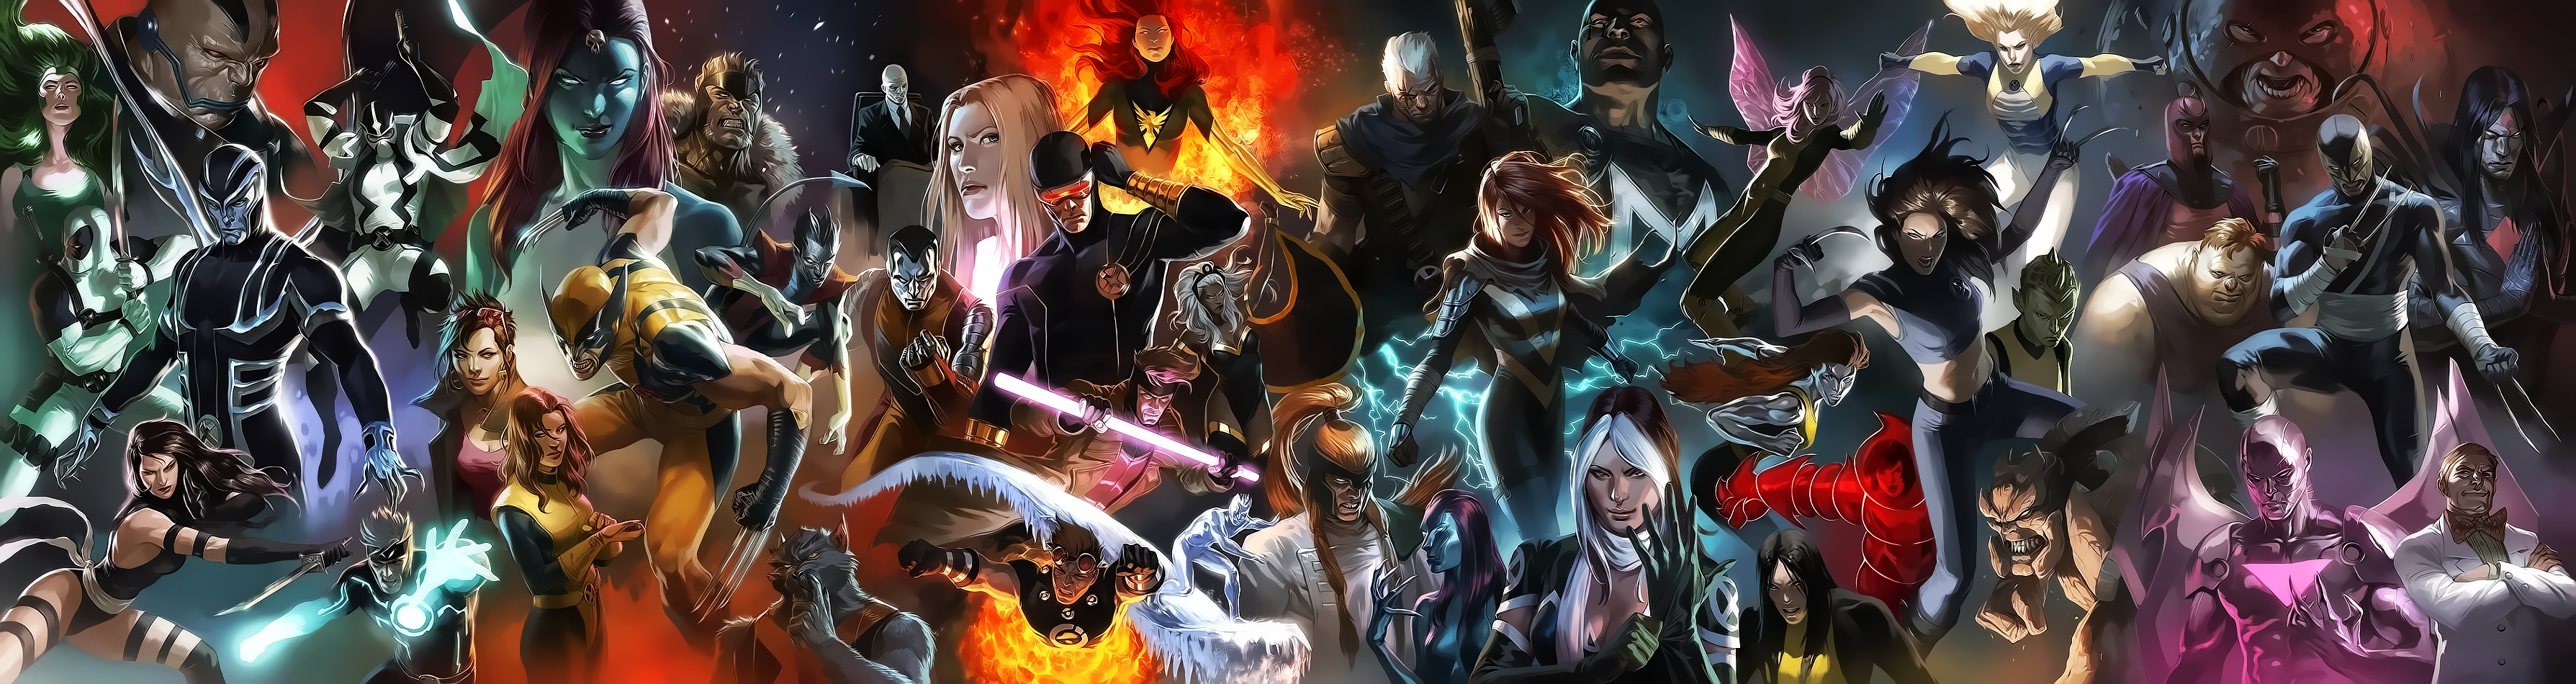 Marvel Universe - X-Men by Aspersio